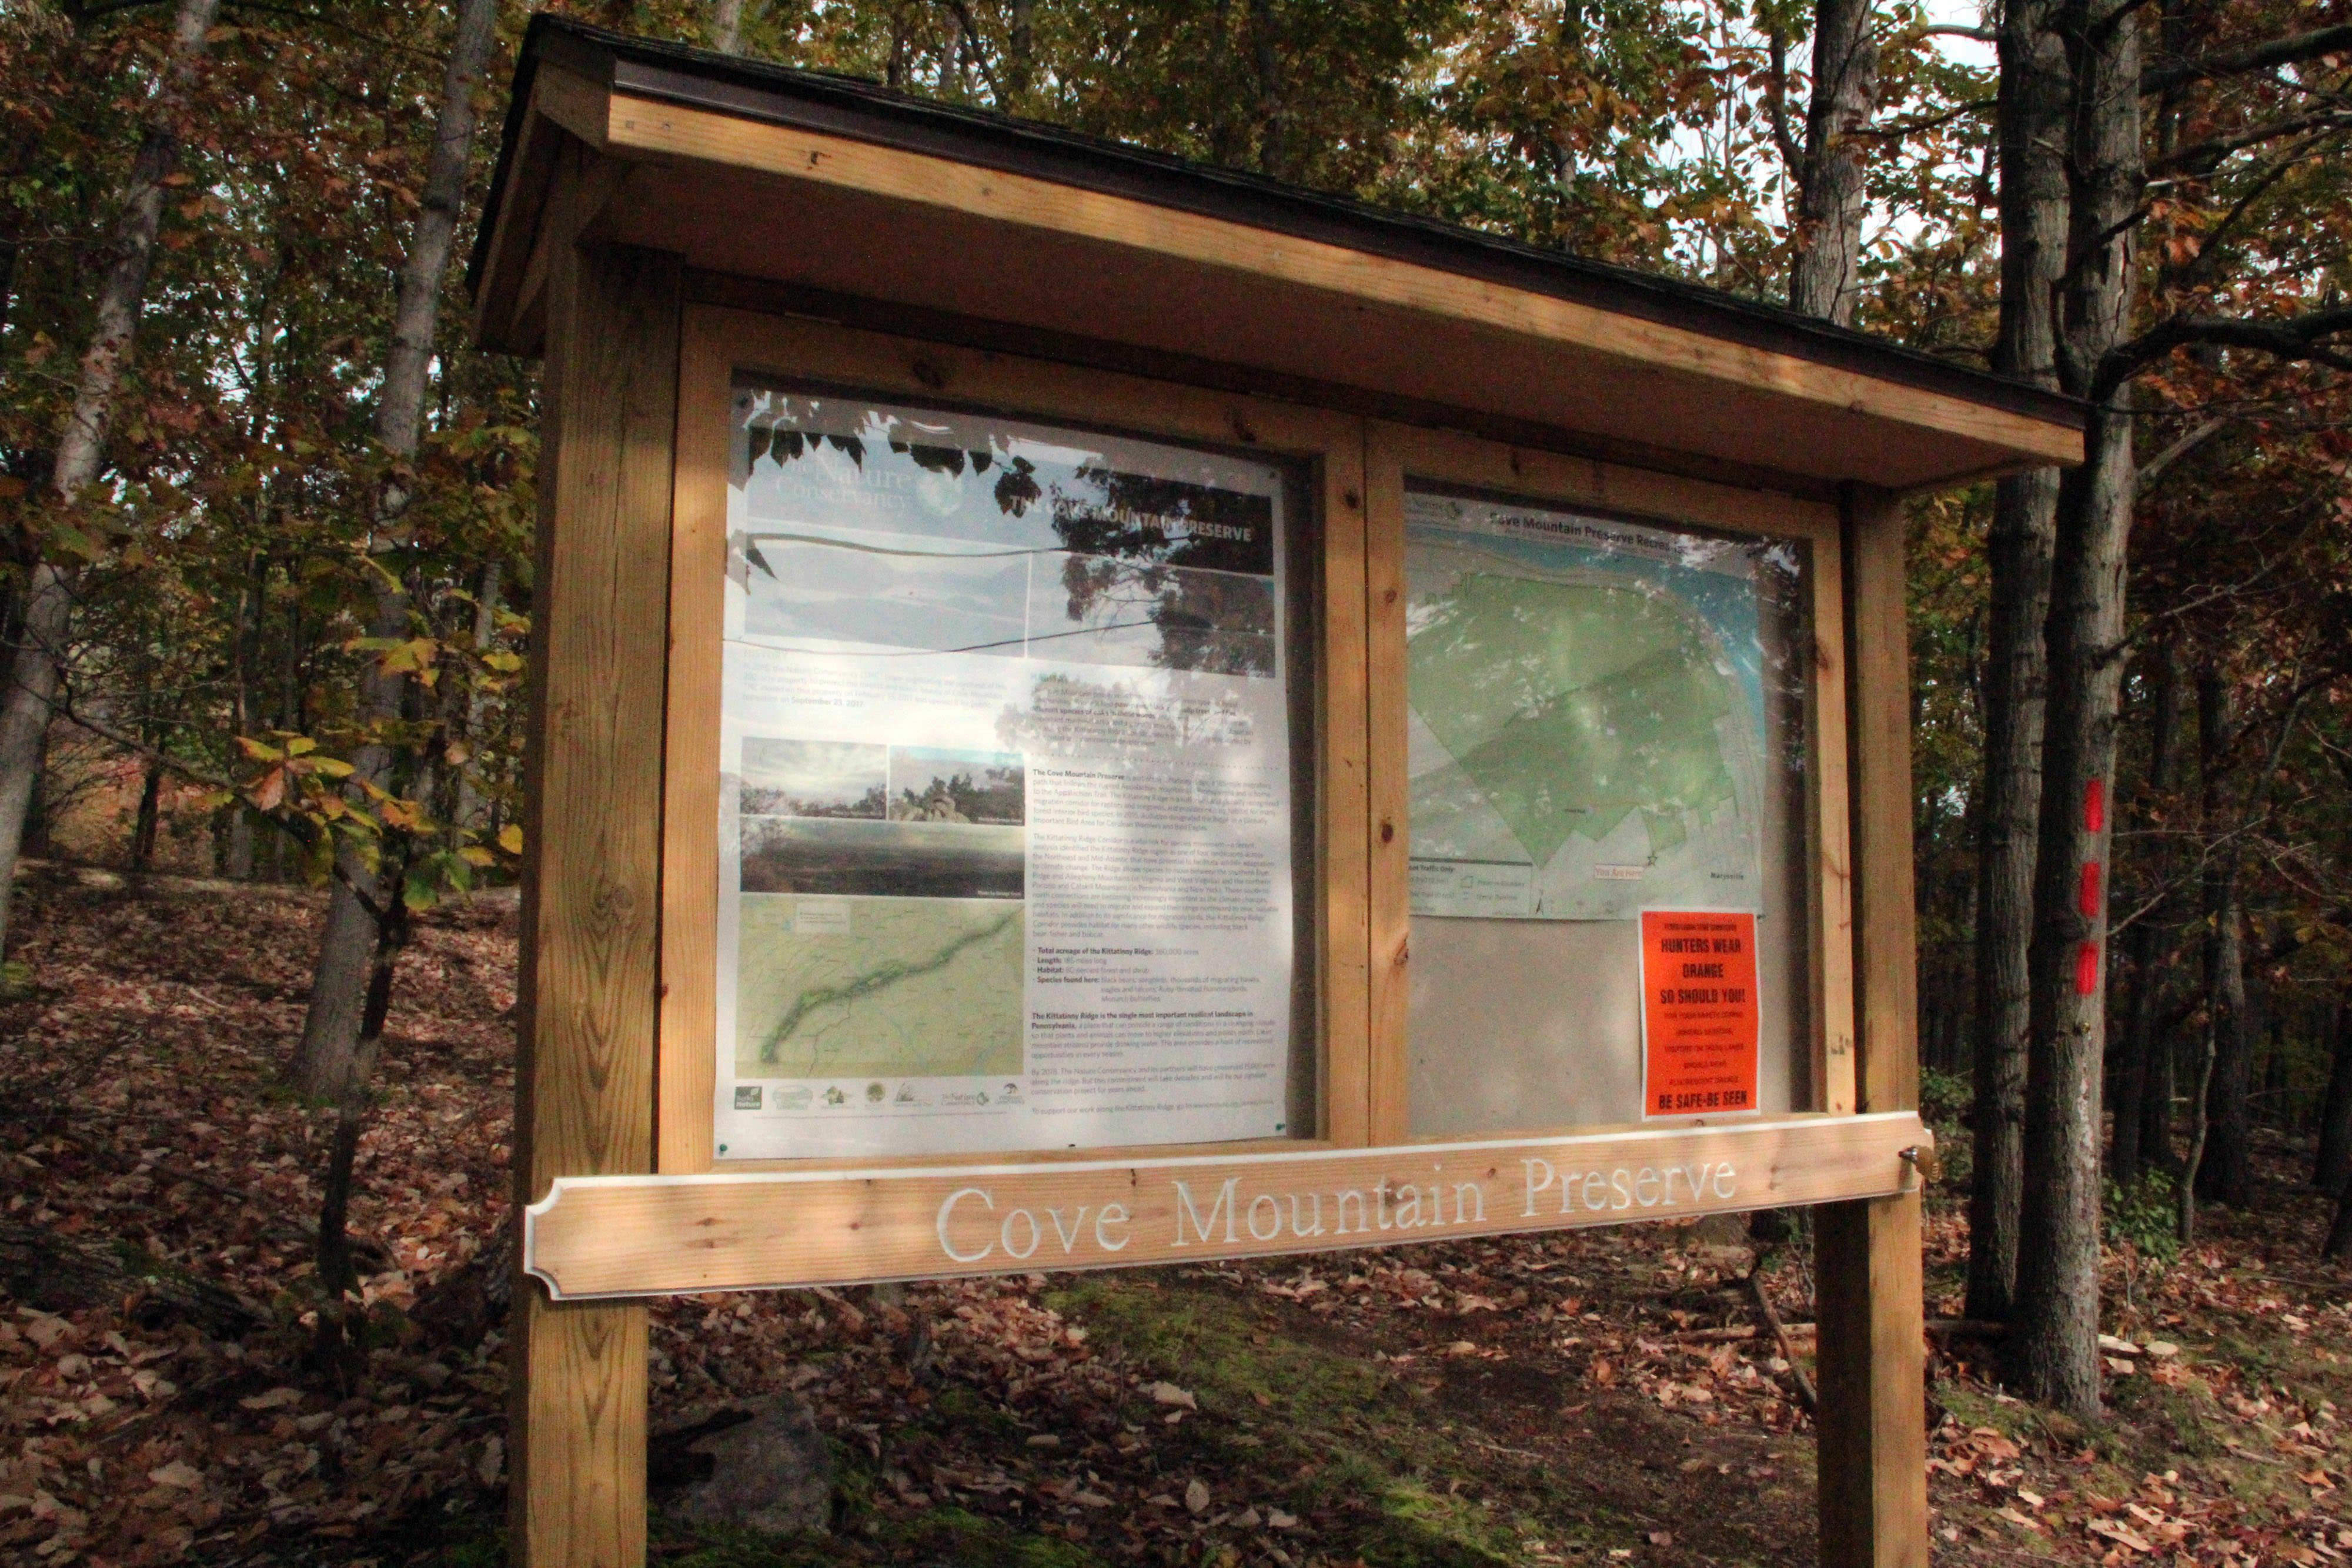 A wooden trail kiosk with a narrow overhangs shades two large information areas showing trial maps and information about the preserve.